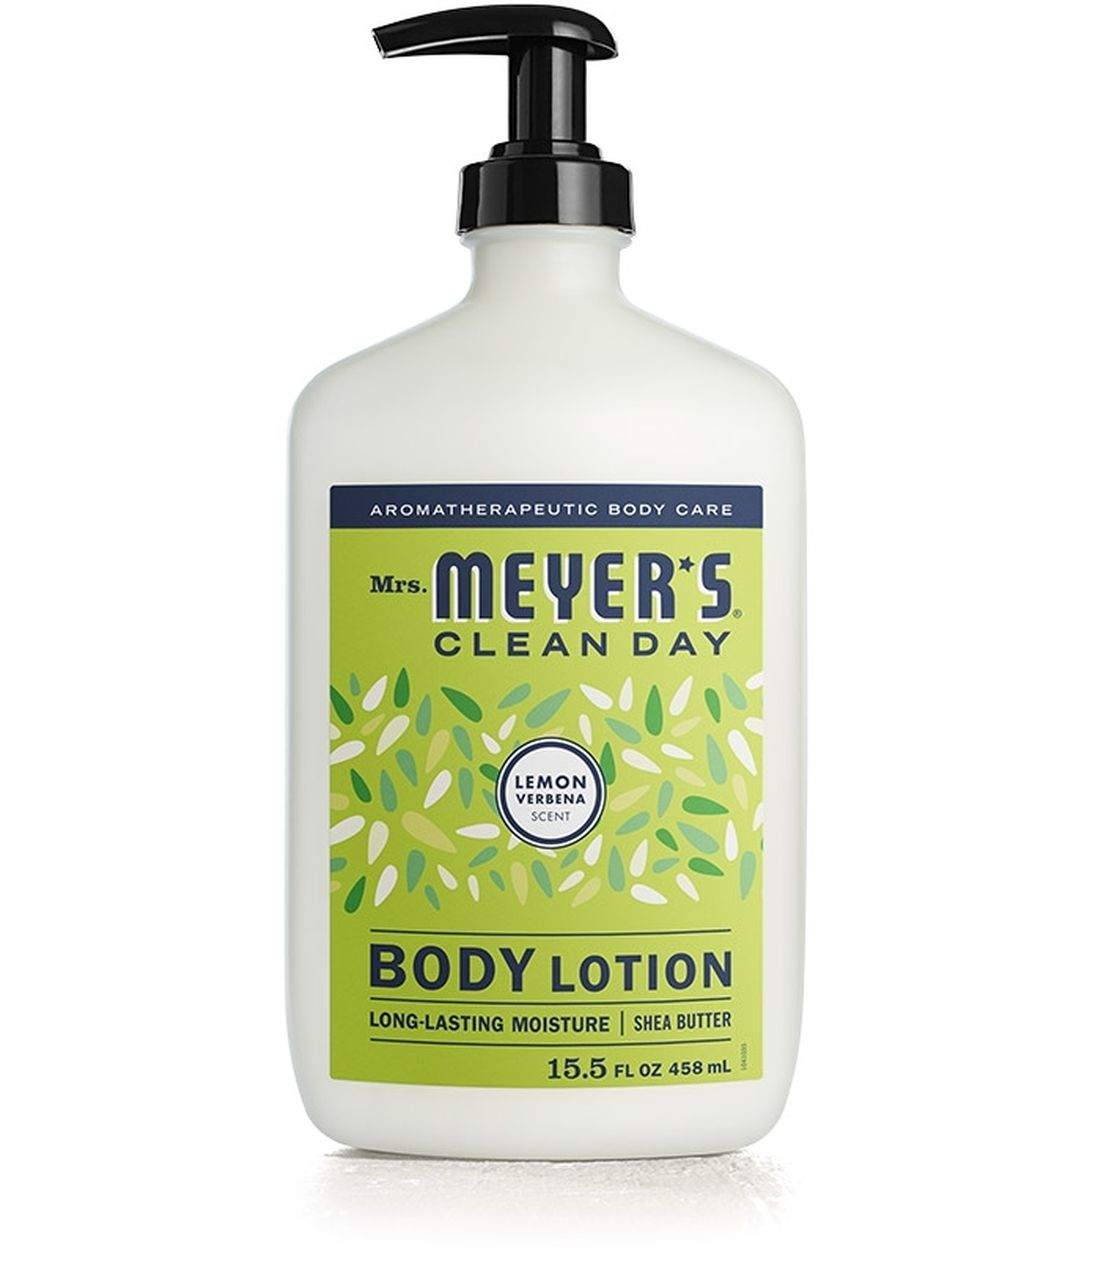 Mrs Meyer S Lemon Verbena Body Lotion 15 5 Fl Oz In 2020 Body